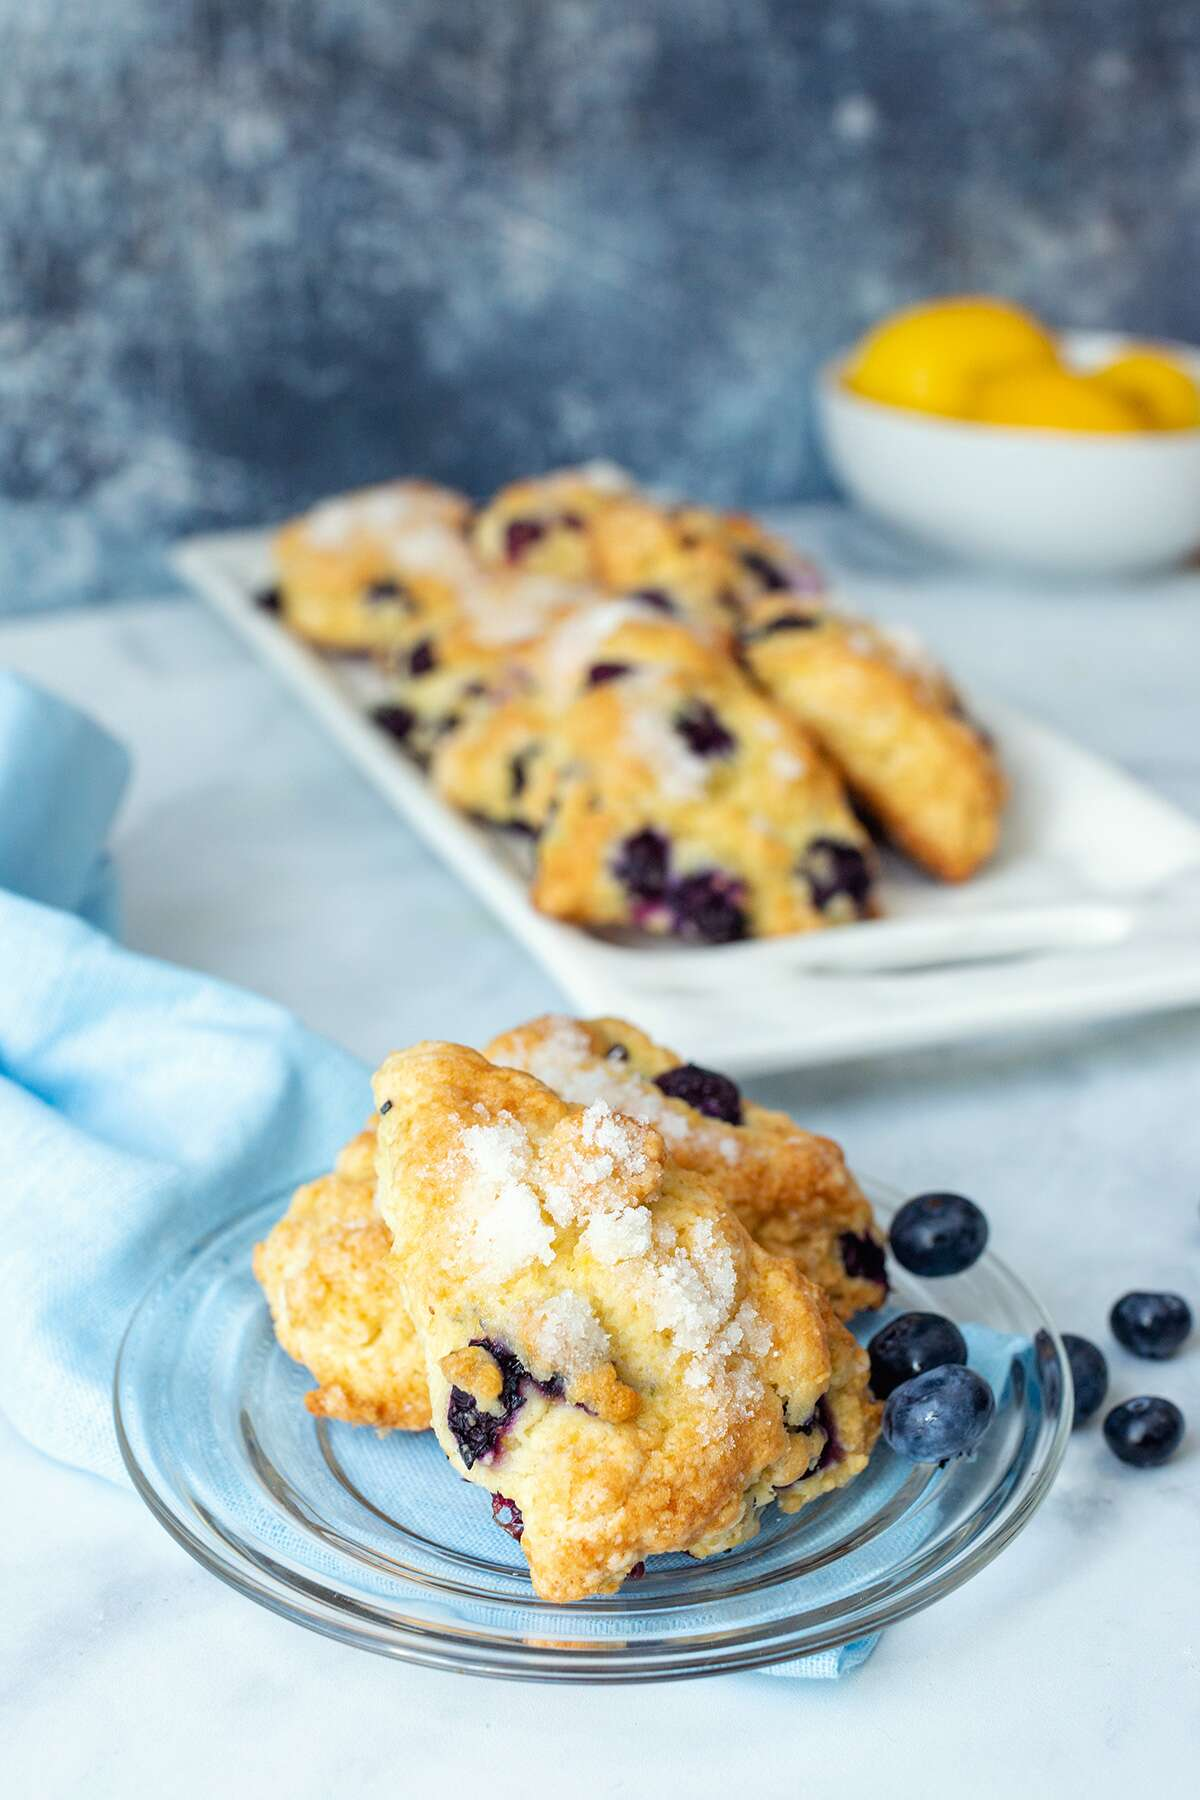 Fresh blueberry scones on a platter next to a bowl of lemons with two scones on a plate, ready for serving